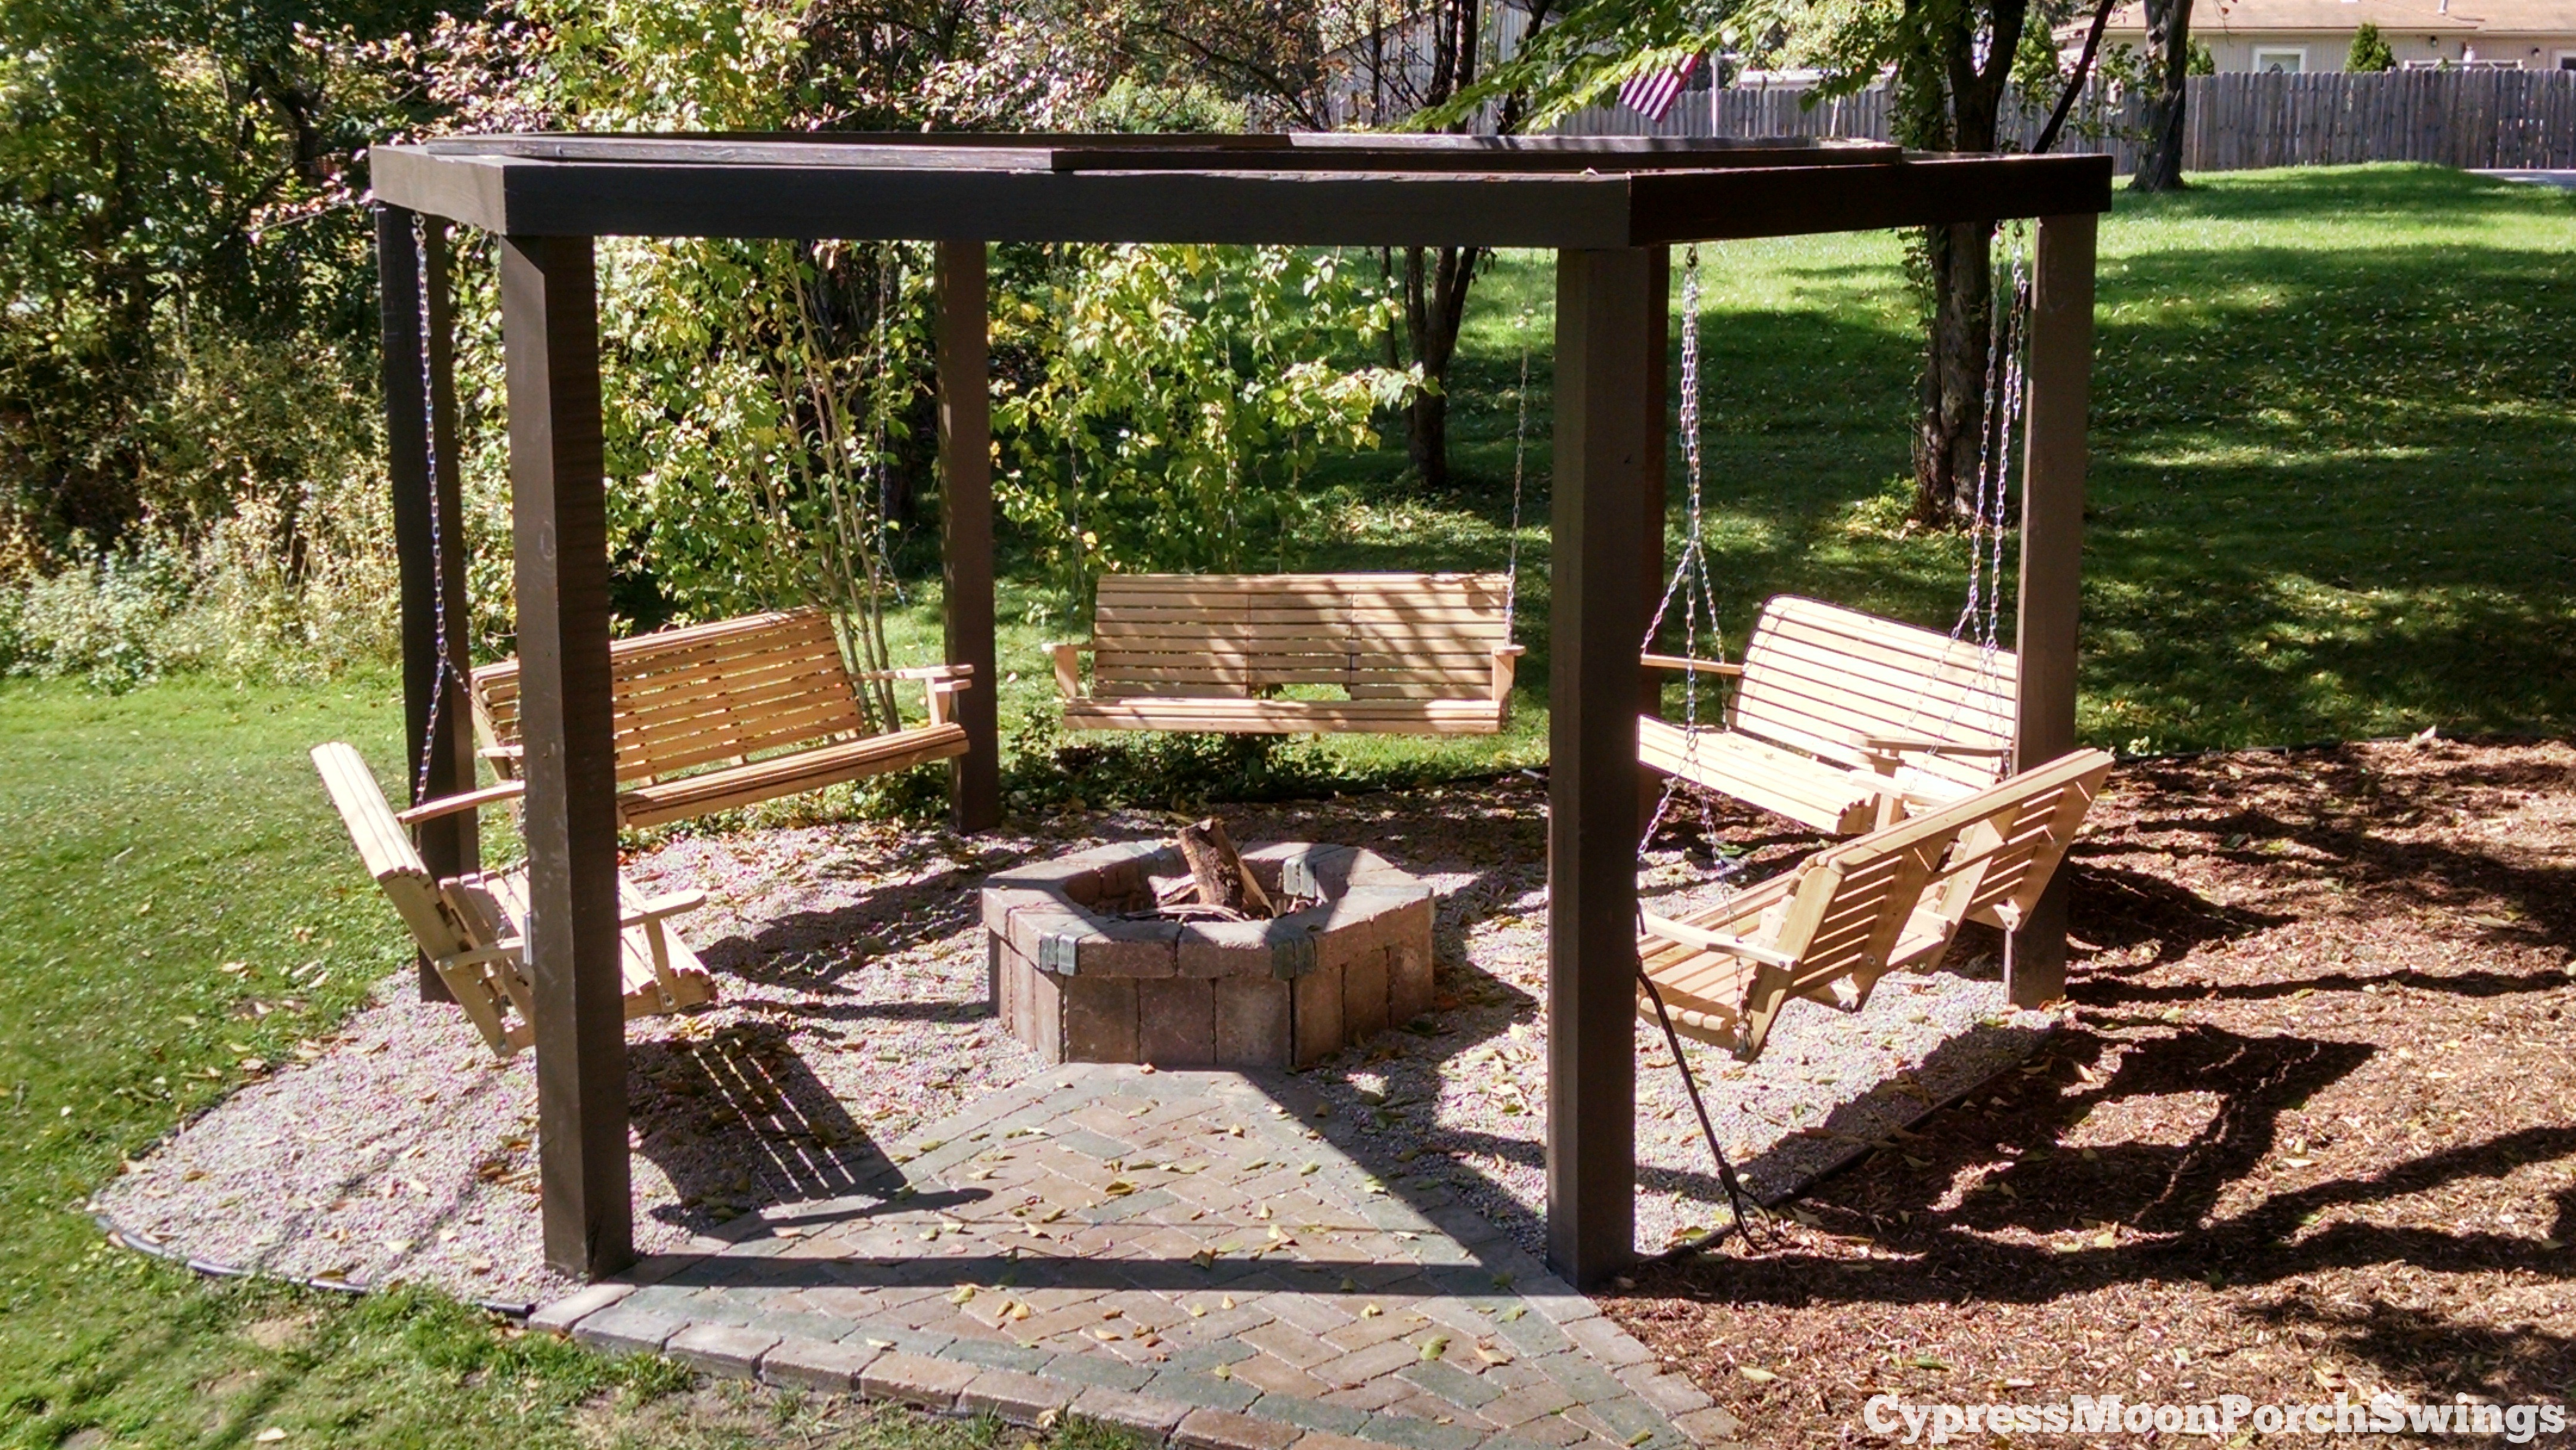 Photos of porch swings fire pit circle - porch swings - patio swings - outdoor xtrjtwd